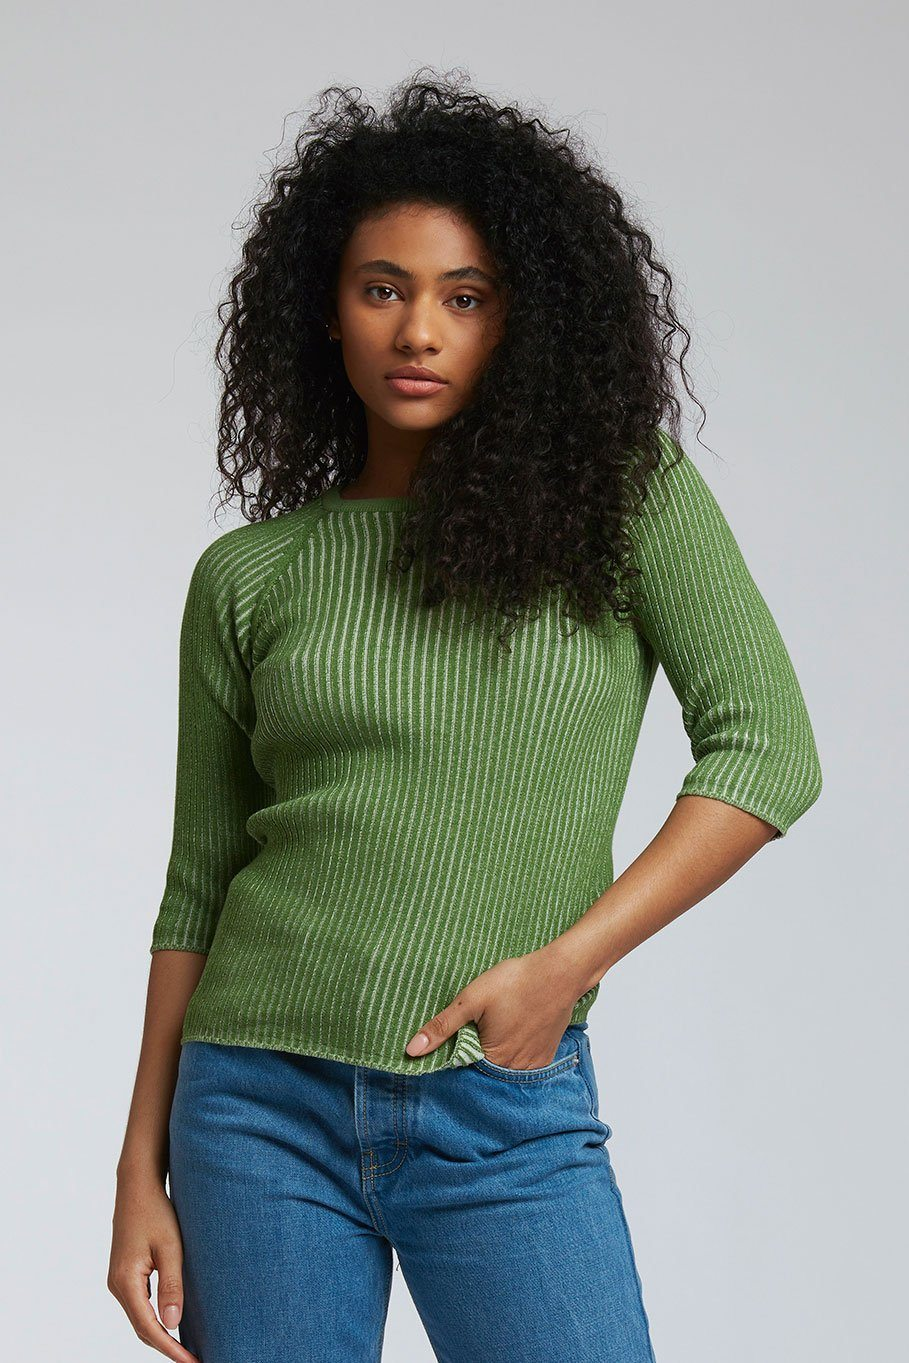 Top - VISTA - GOTS Organic Cotton Top Cactus